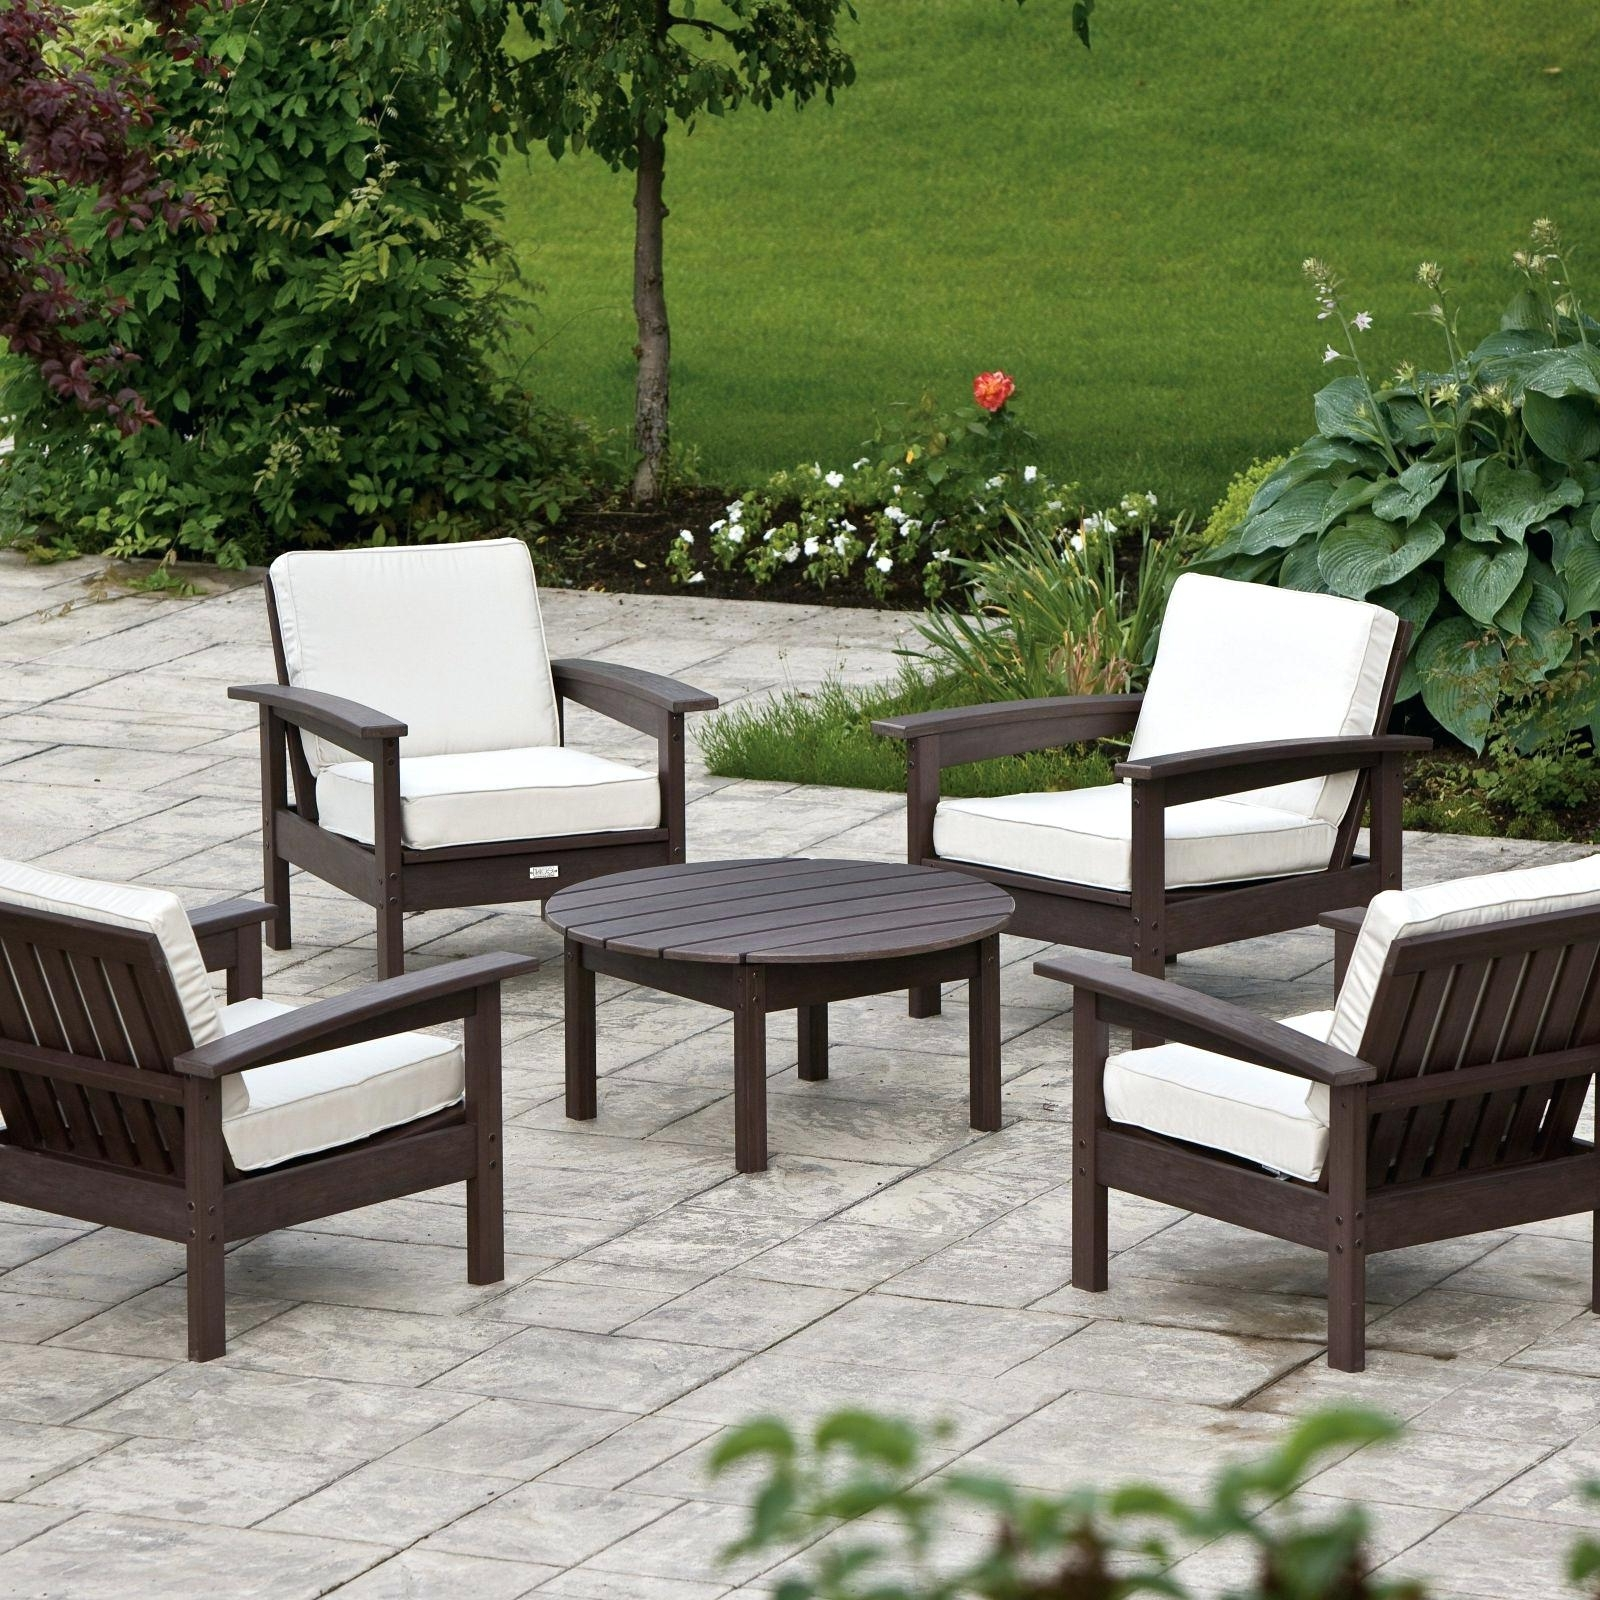 Nfm Patio Conversation Sets With Recent Patio Conversation Sets Under 500 #4701257Ba631 – Mylowt (View 14 of 20)